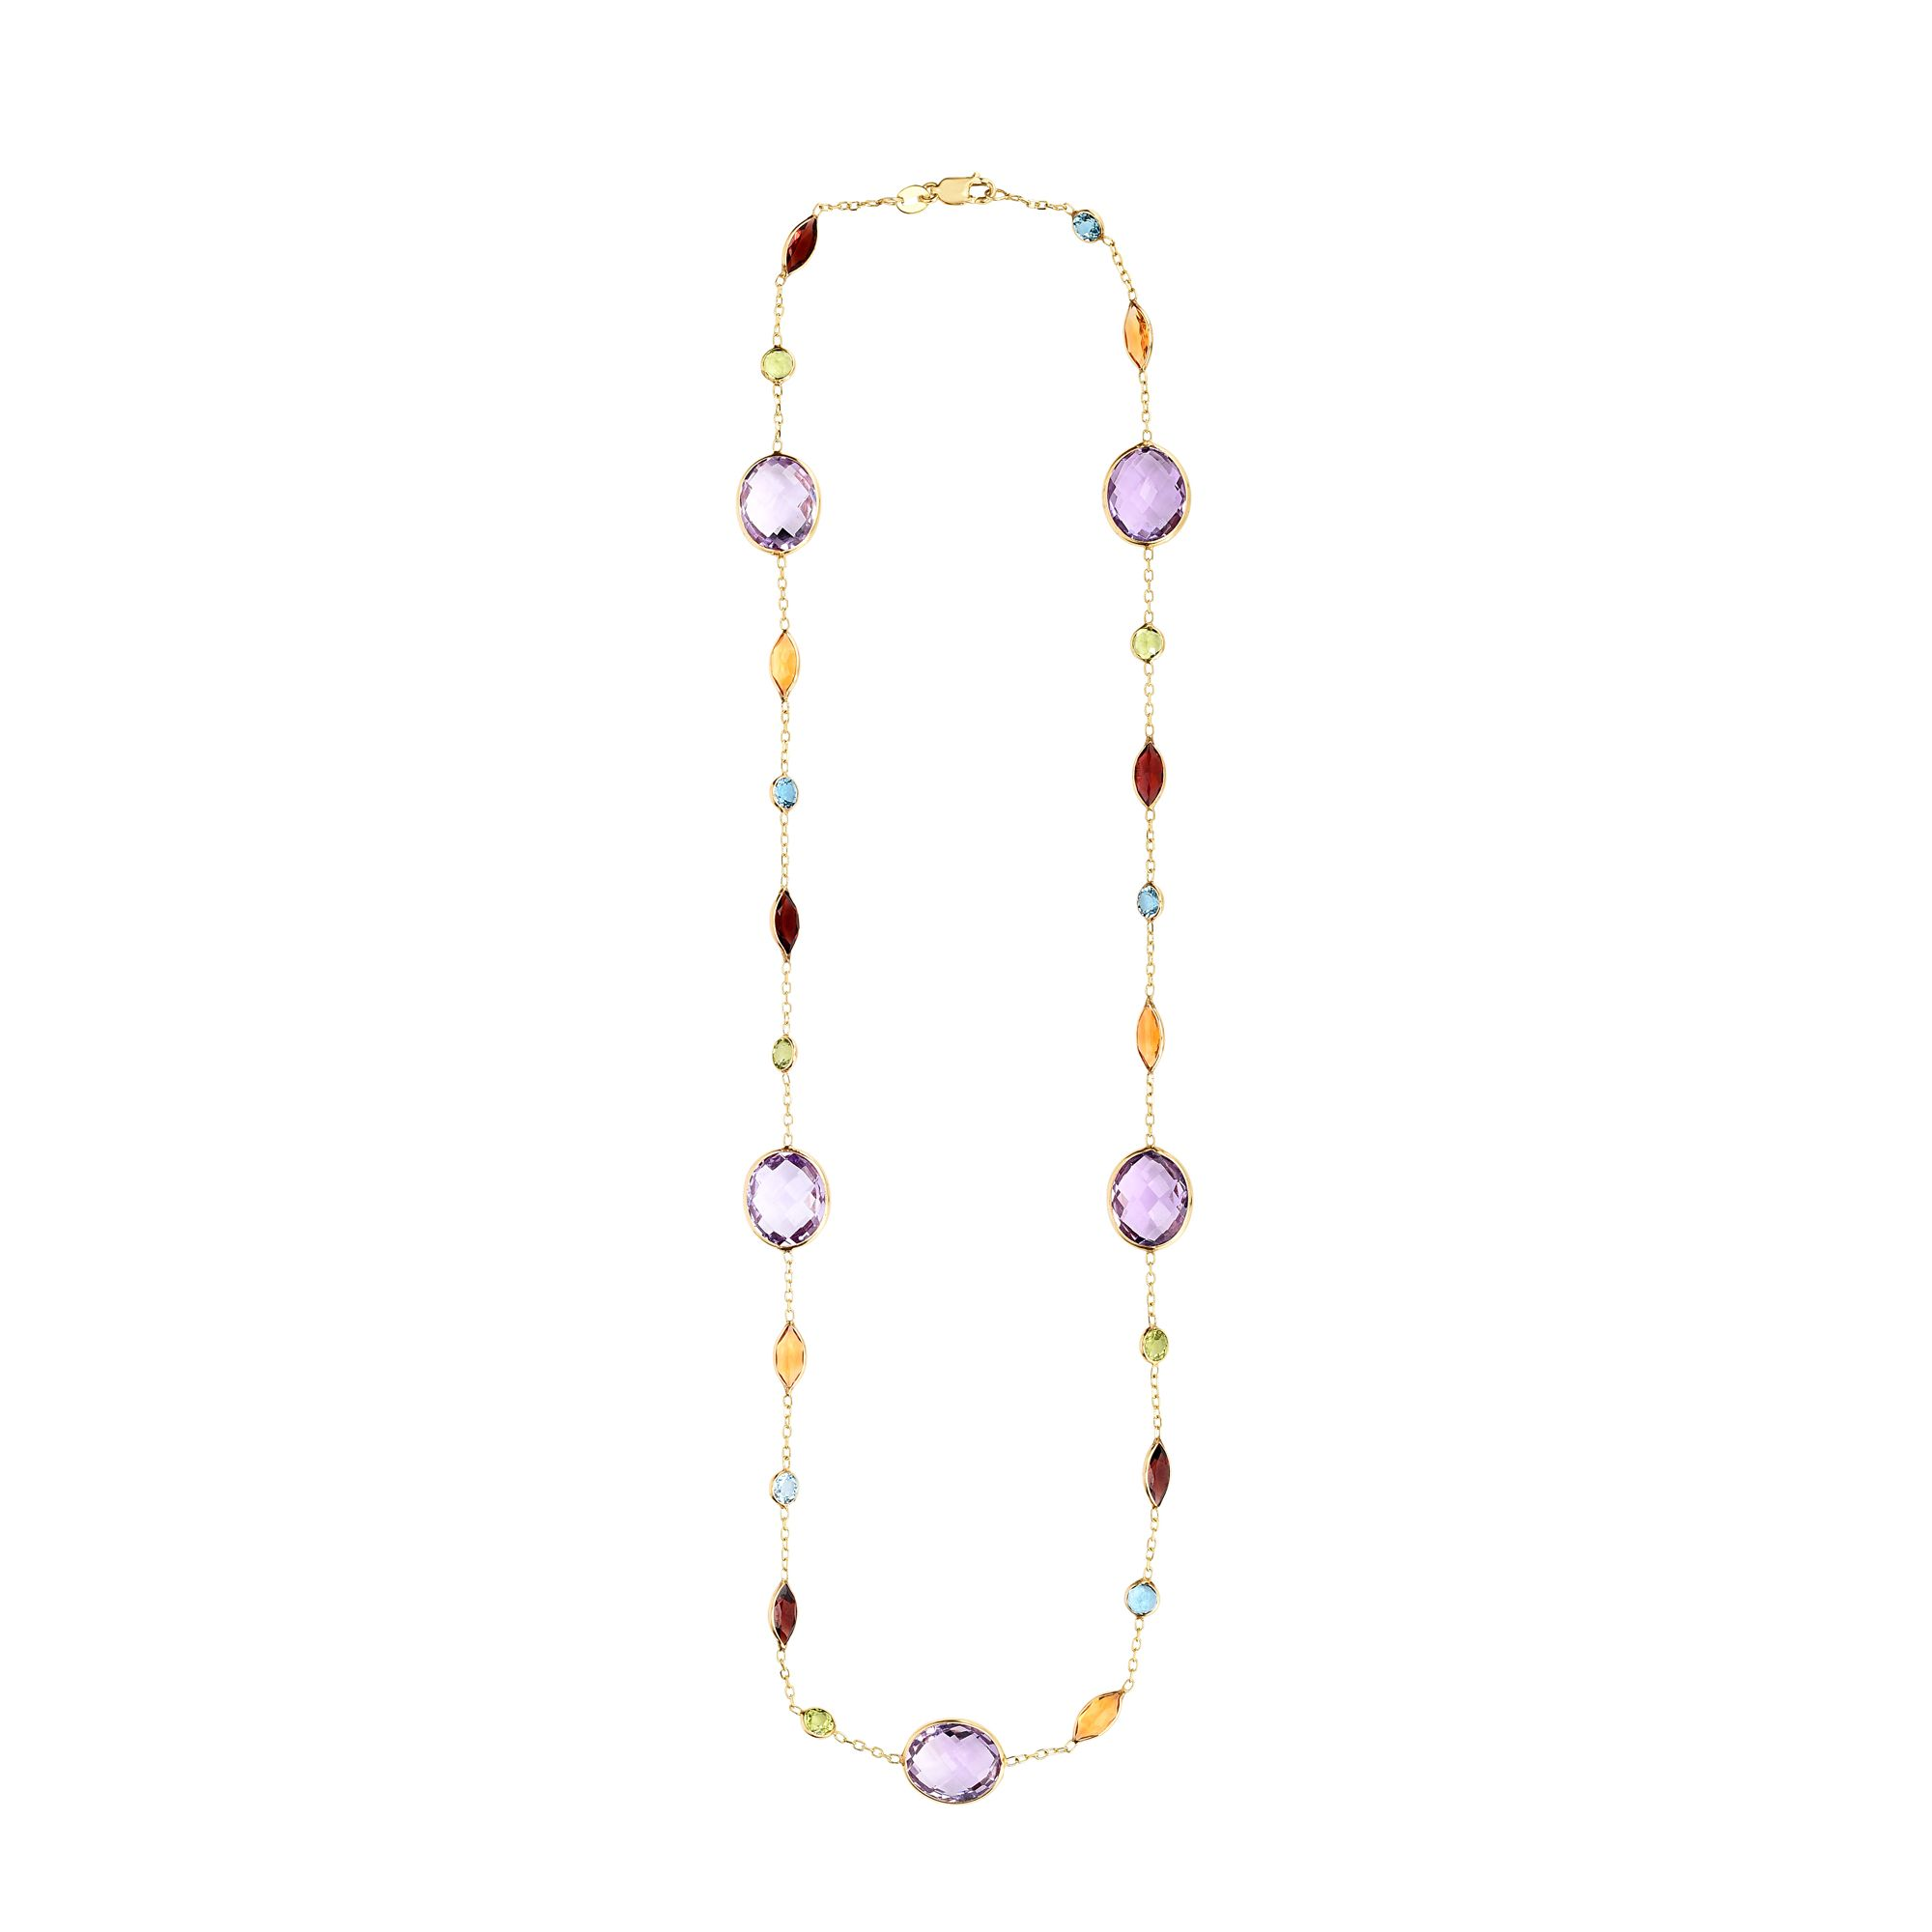 14K Yellow Gold 1mm Cable Necklace with Multi Colored Stones in Multi Shape with Lobster Clasp by Goldia